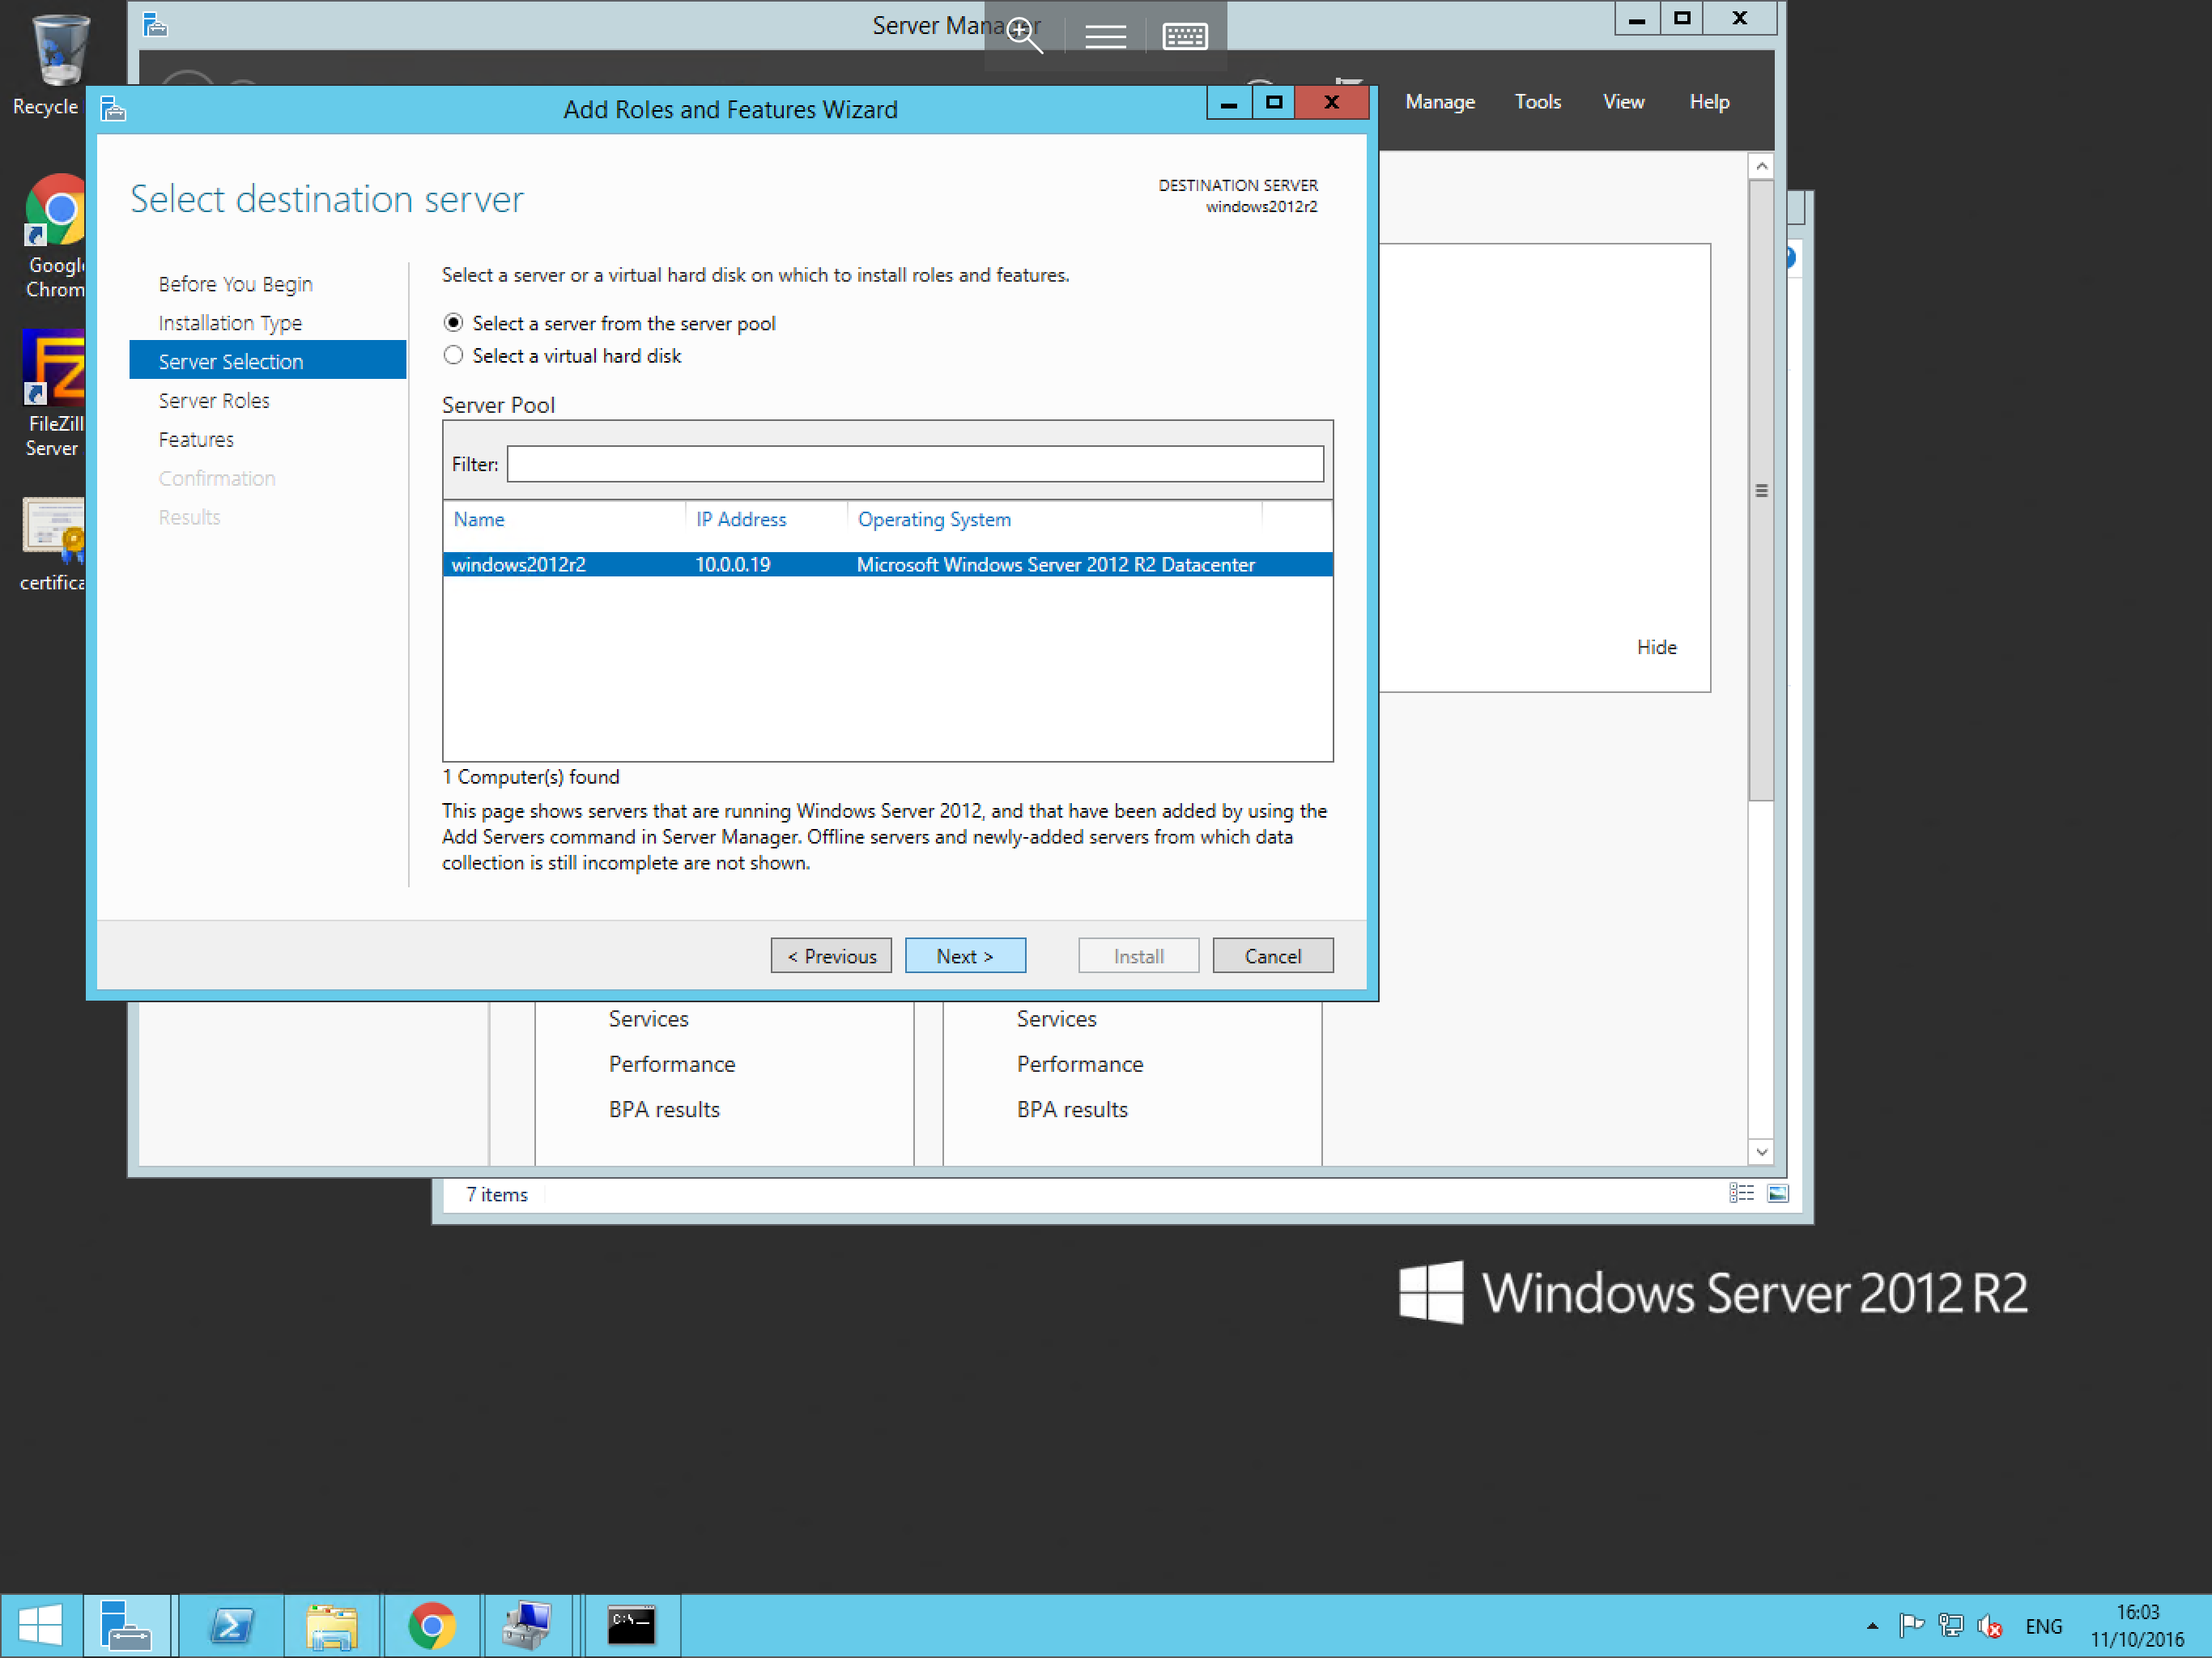 Installing Roles/Features on Windows Server